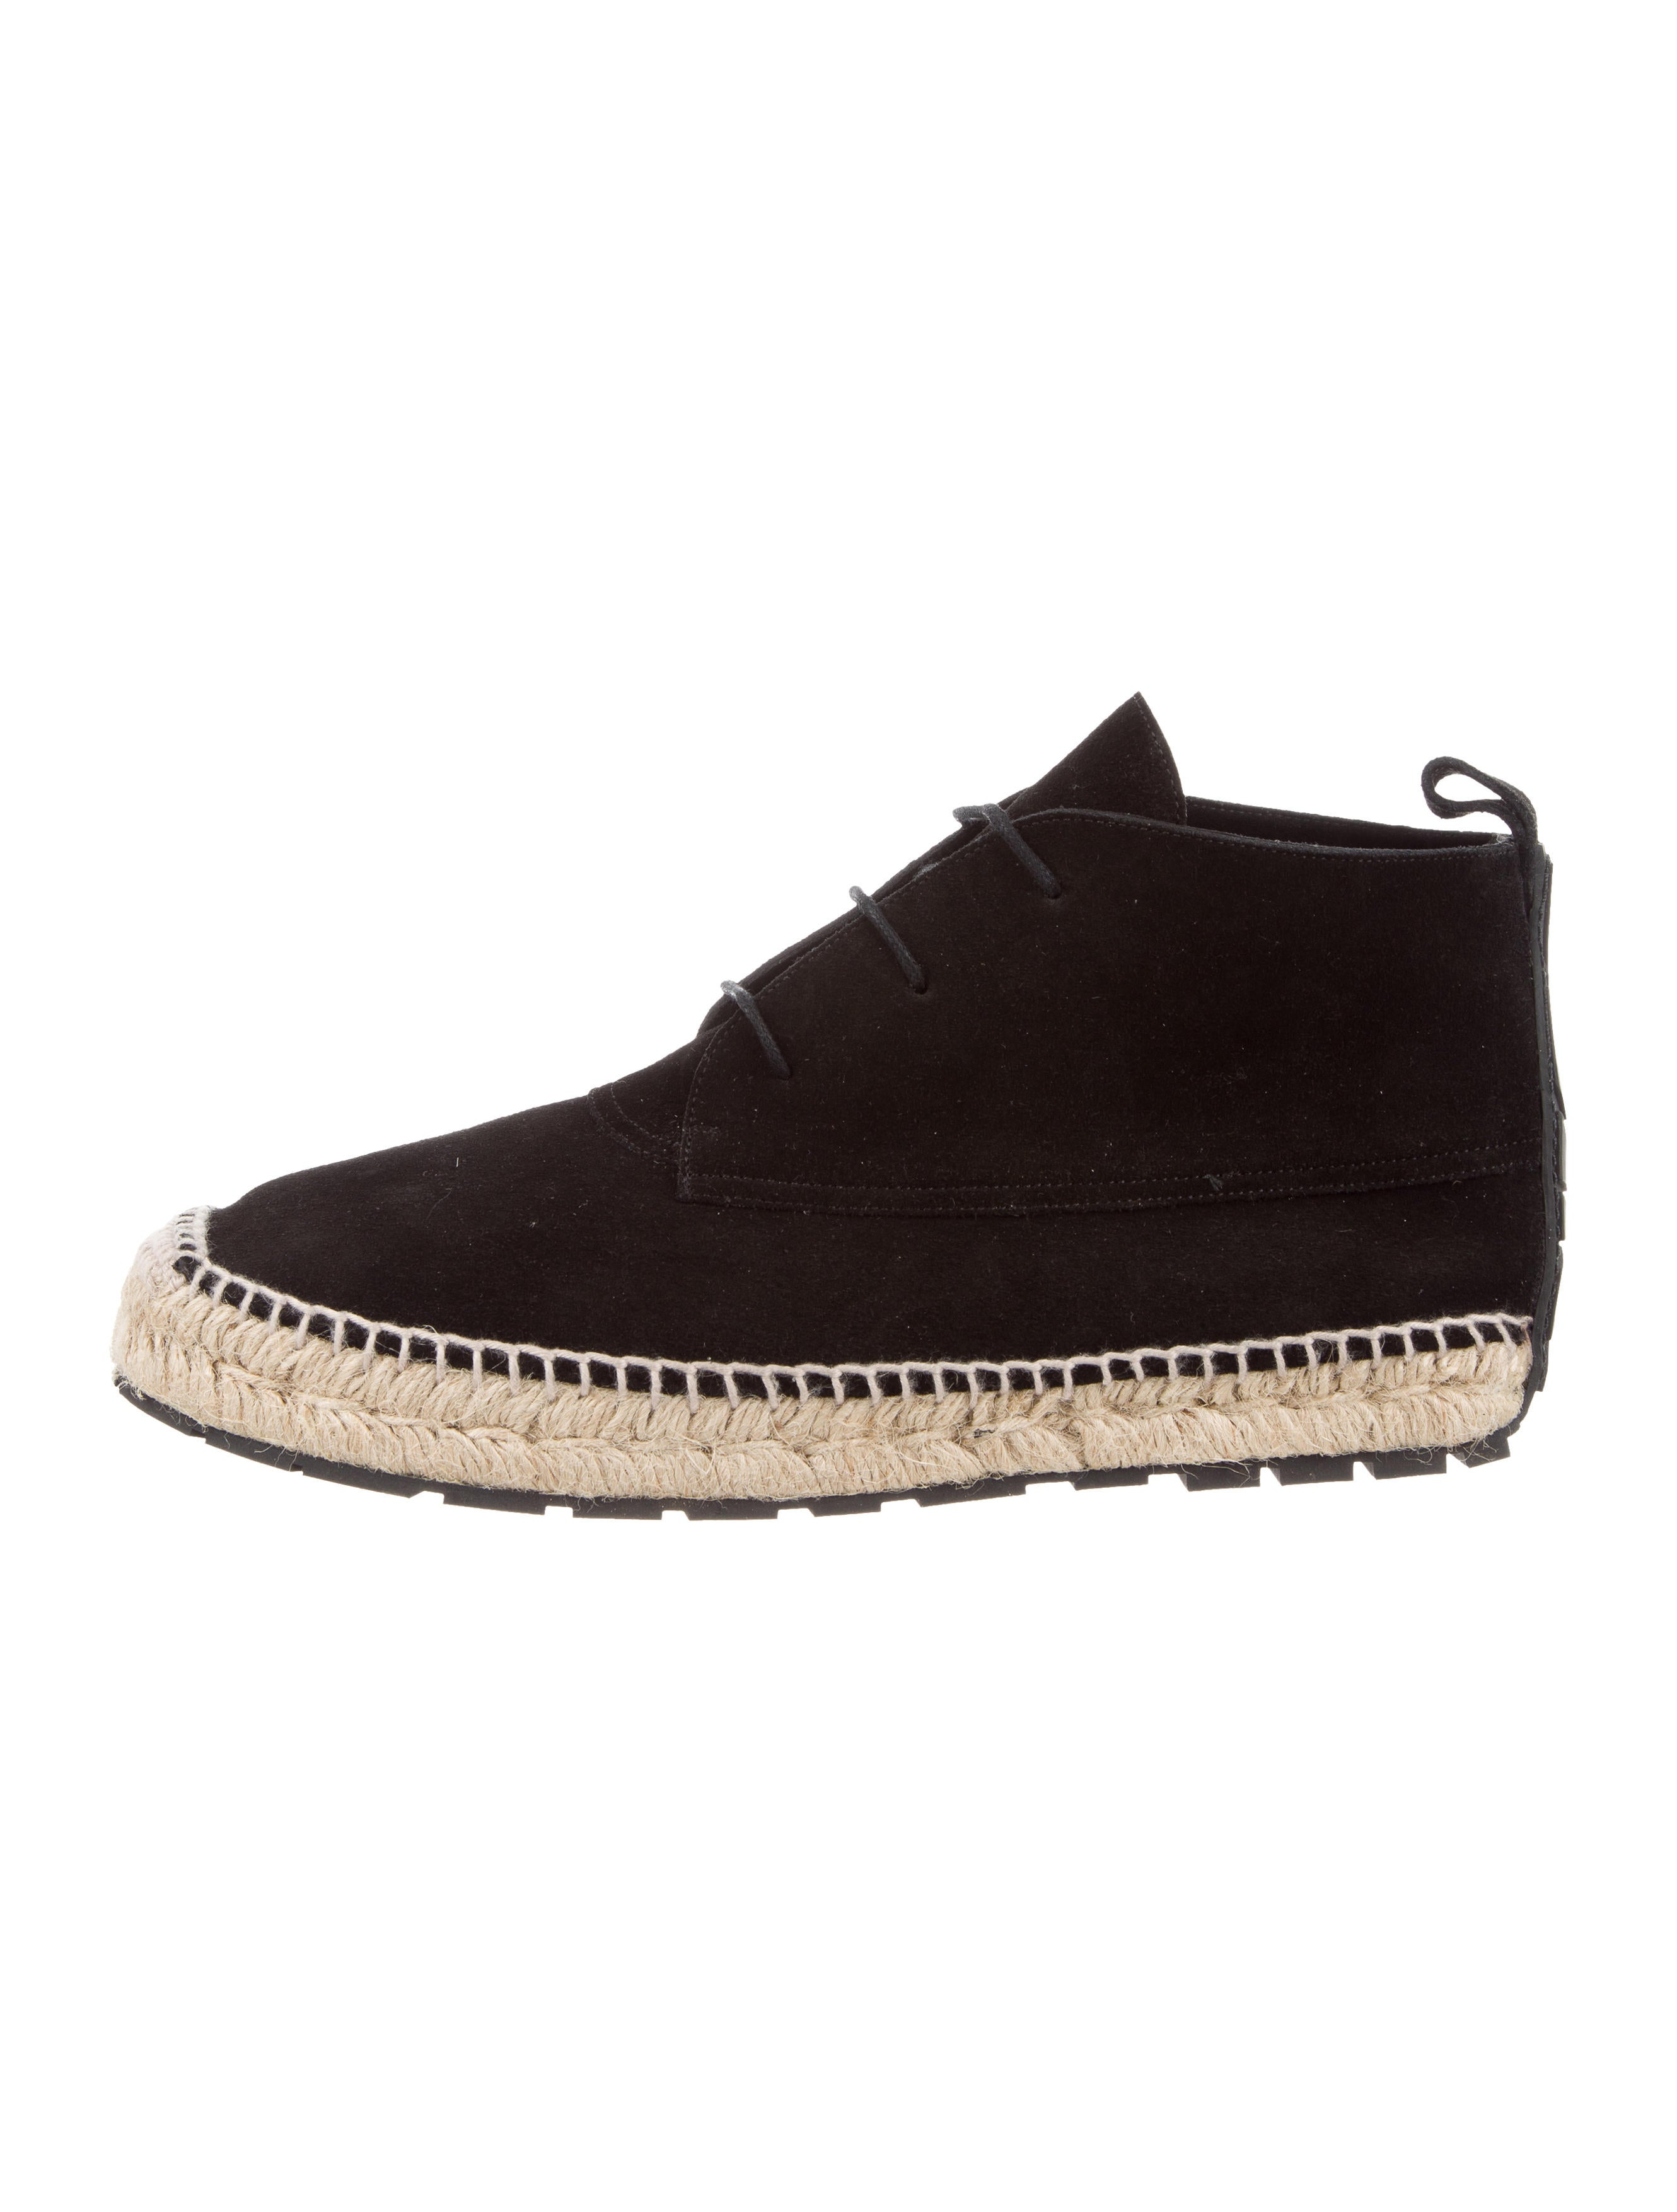 Balenciaga High-Top Espadrille Sneakers clearance online official site free shipping discount discount amazon 4pXWbeCm